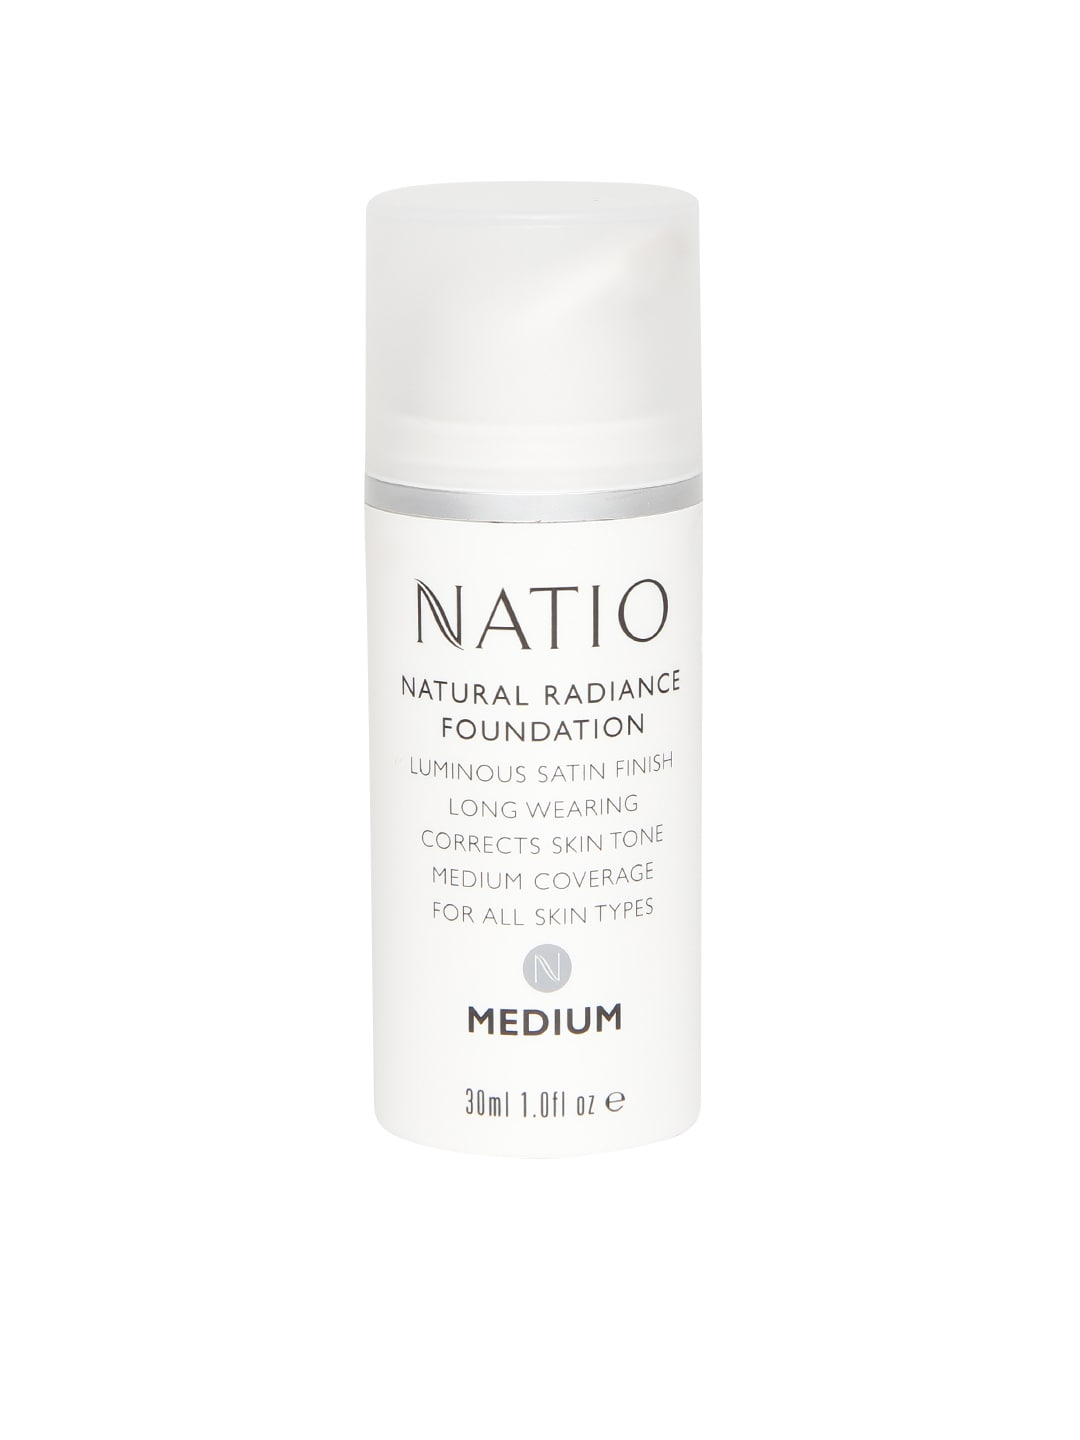 Natio Natural Radiance Medium Foundation image